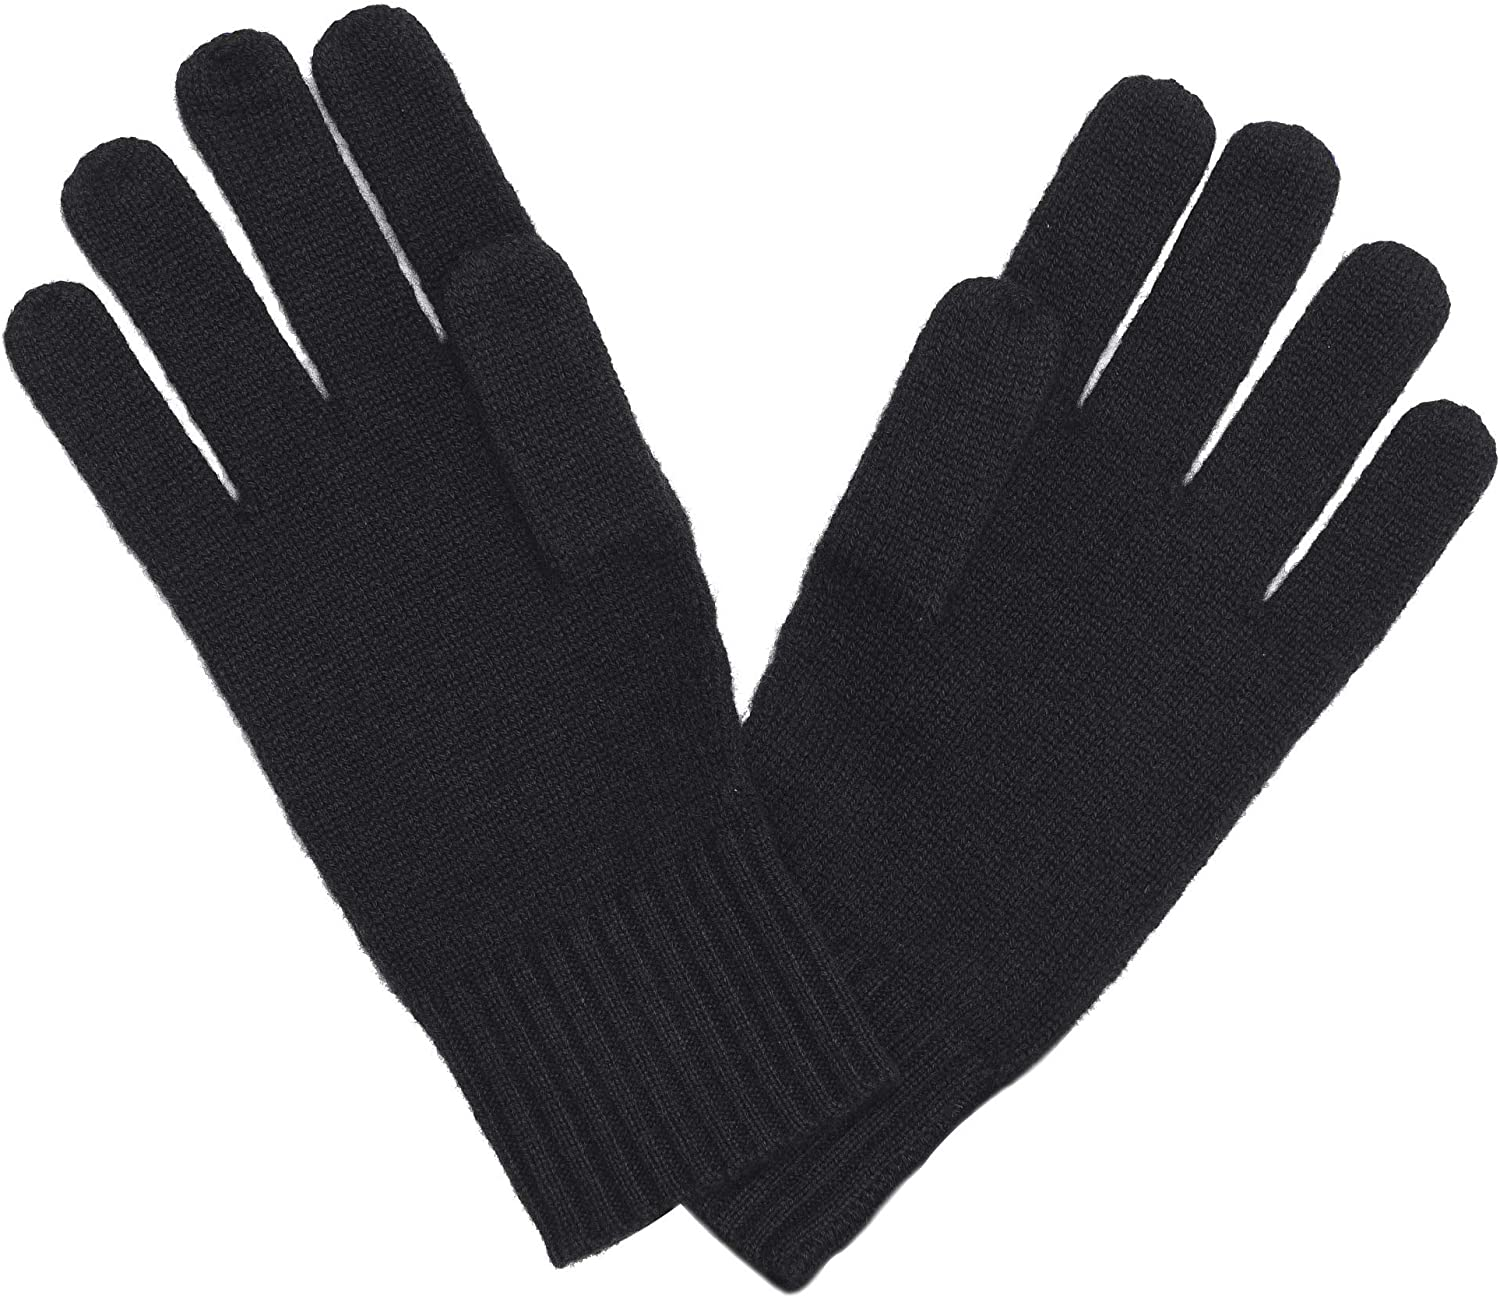 State Fusio Unisex Knitted Gloves Cashmere Merino Wool Long Ribbed Cuffs Extra Warm and Soft